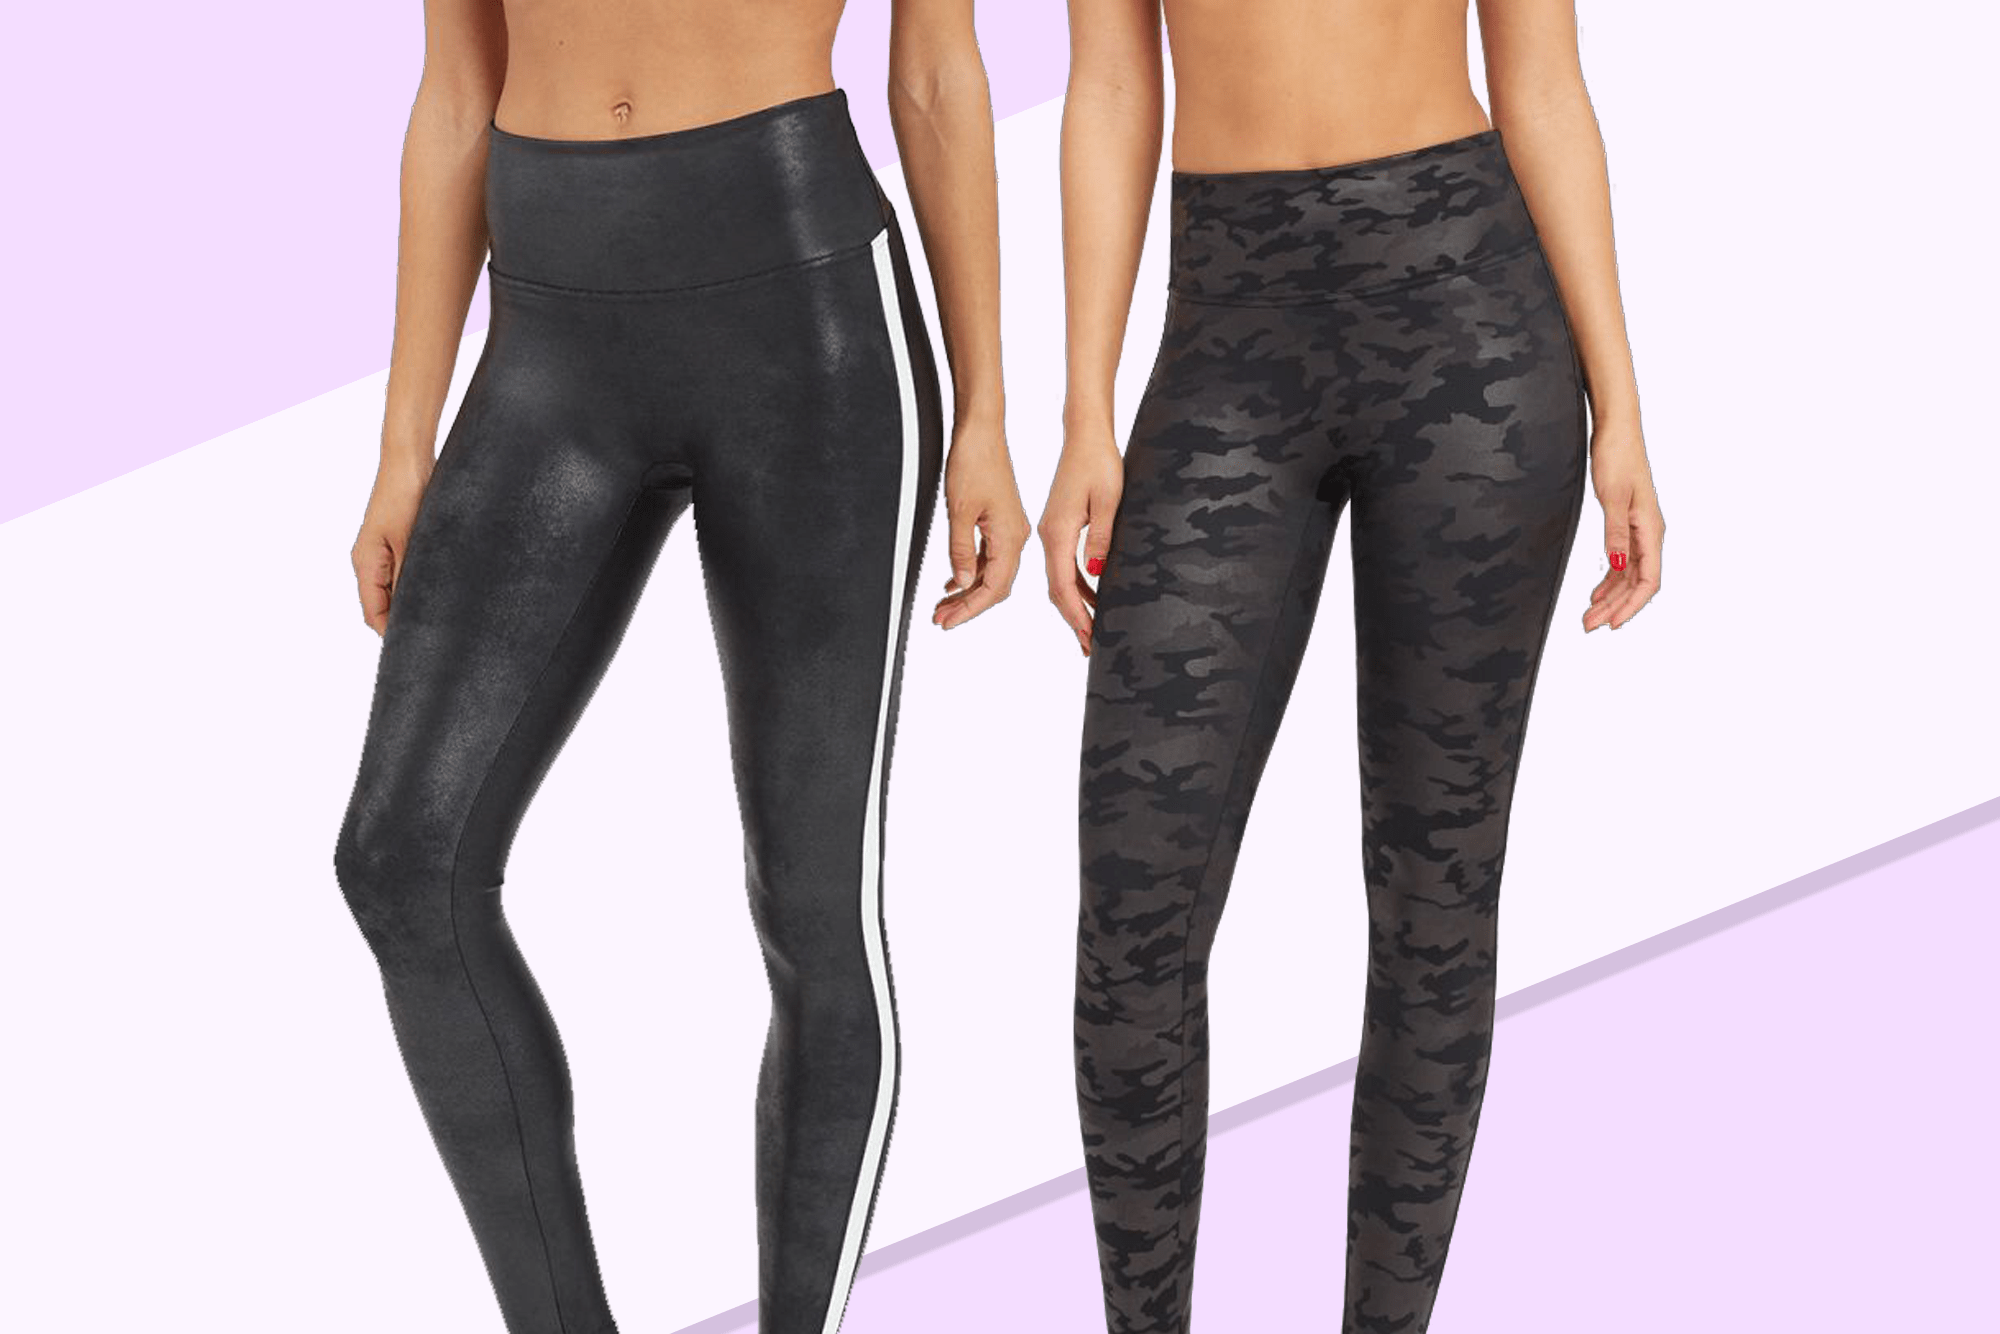 Spanx Takes 50 Percent Off Best Selling Leggings For Flash Sale